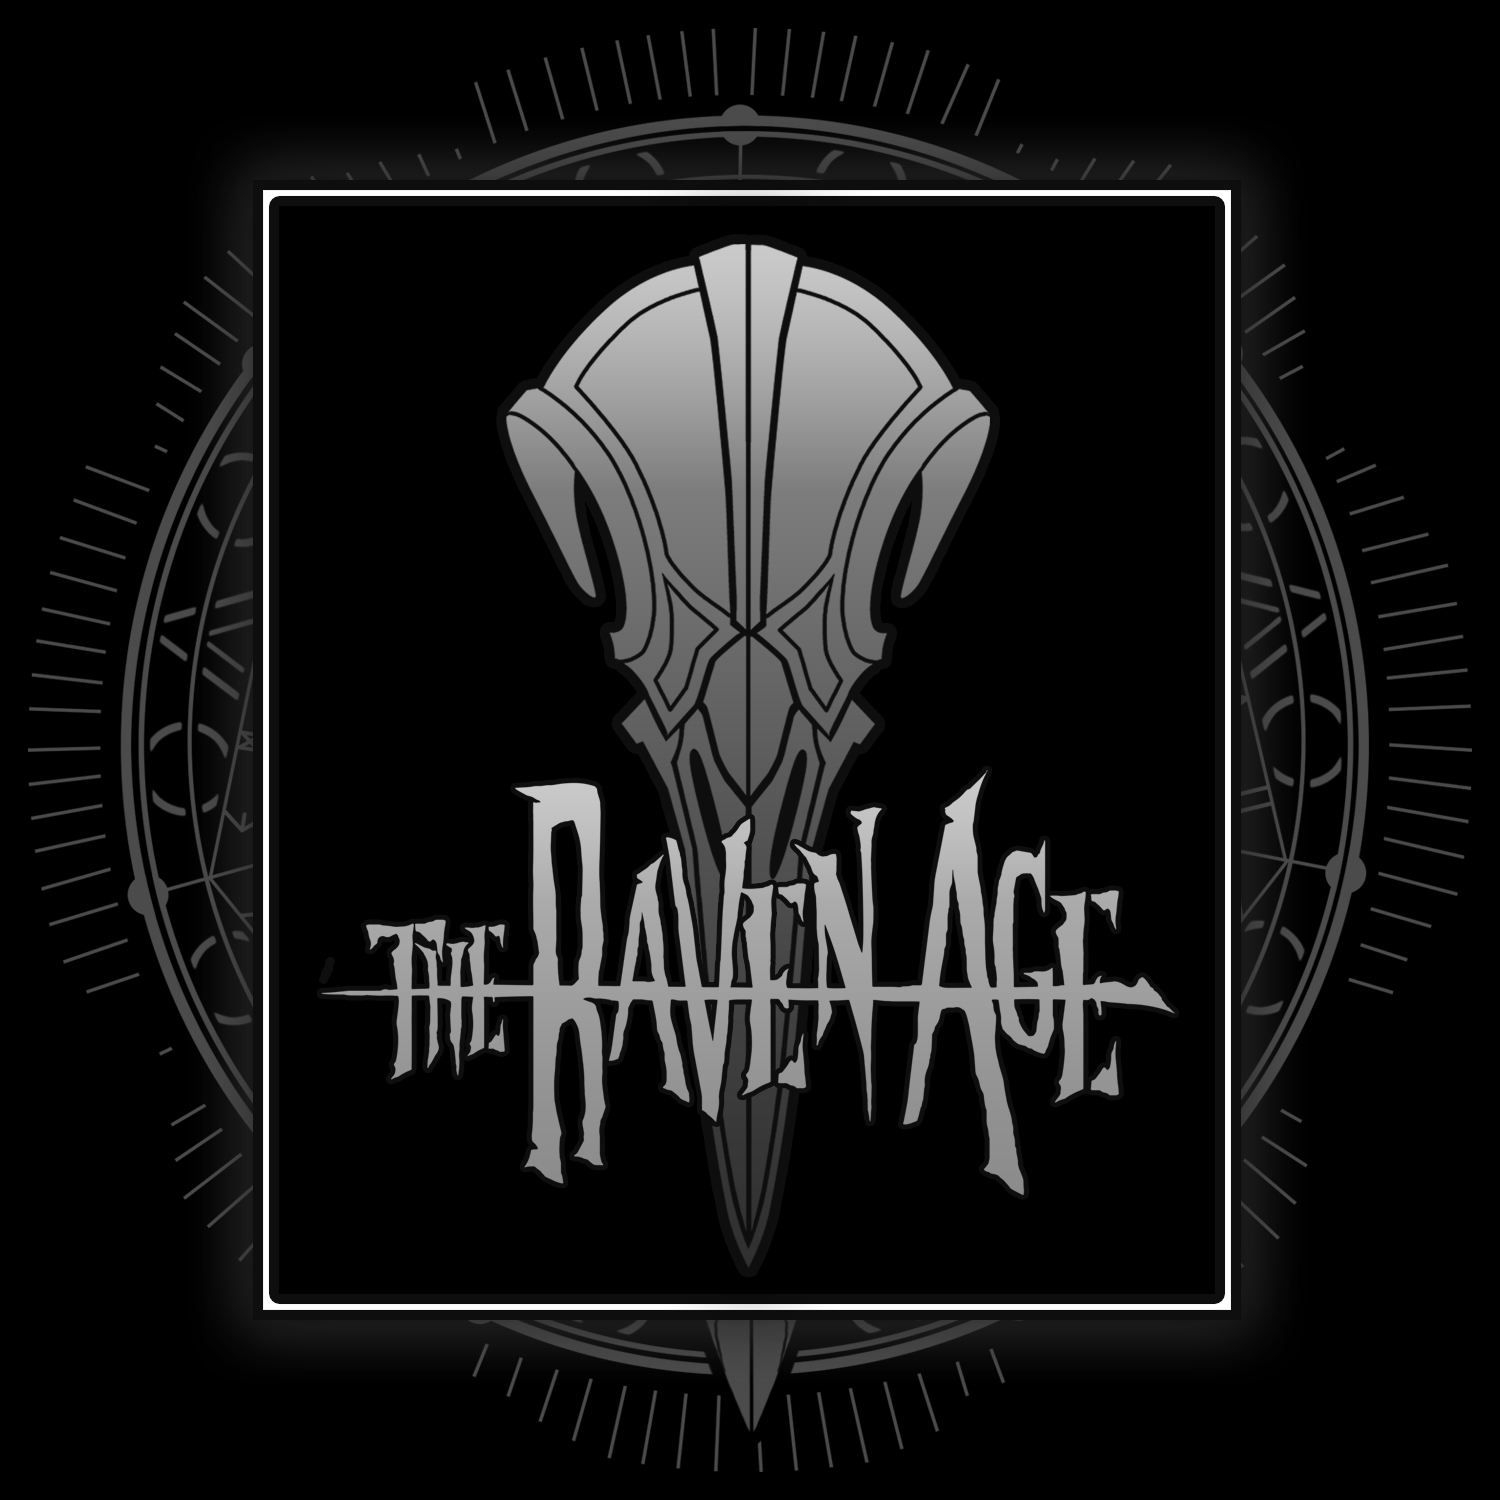 The Raven Age - Patch - The Raven Age